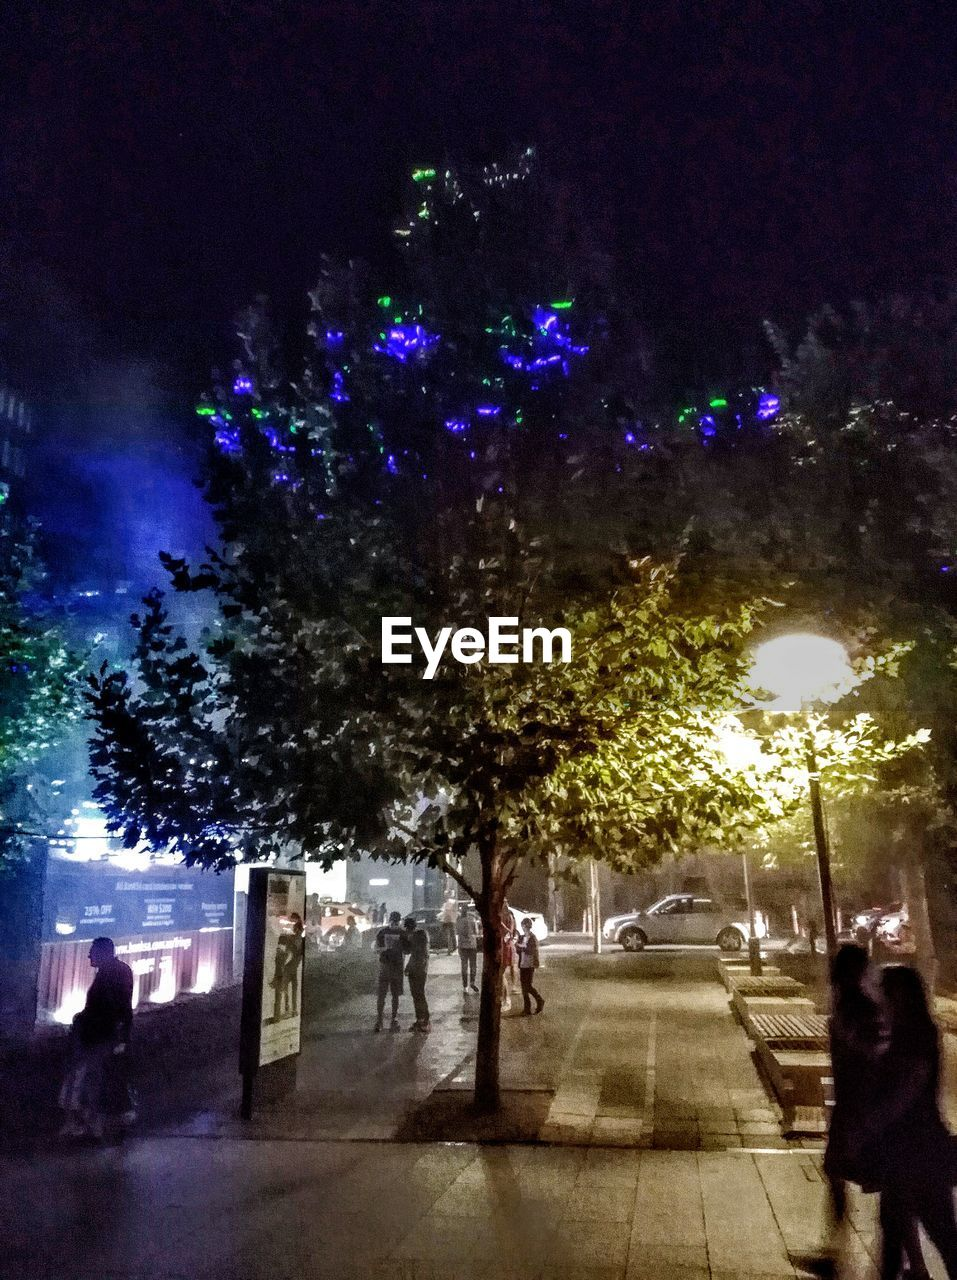 night, real people, large group of people, illuminated, men, women, lifestyles, leisure activity, tree, city life, celebration, group of people, outdoors, city, crowd, nature, sky, people, adult